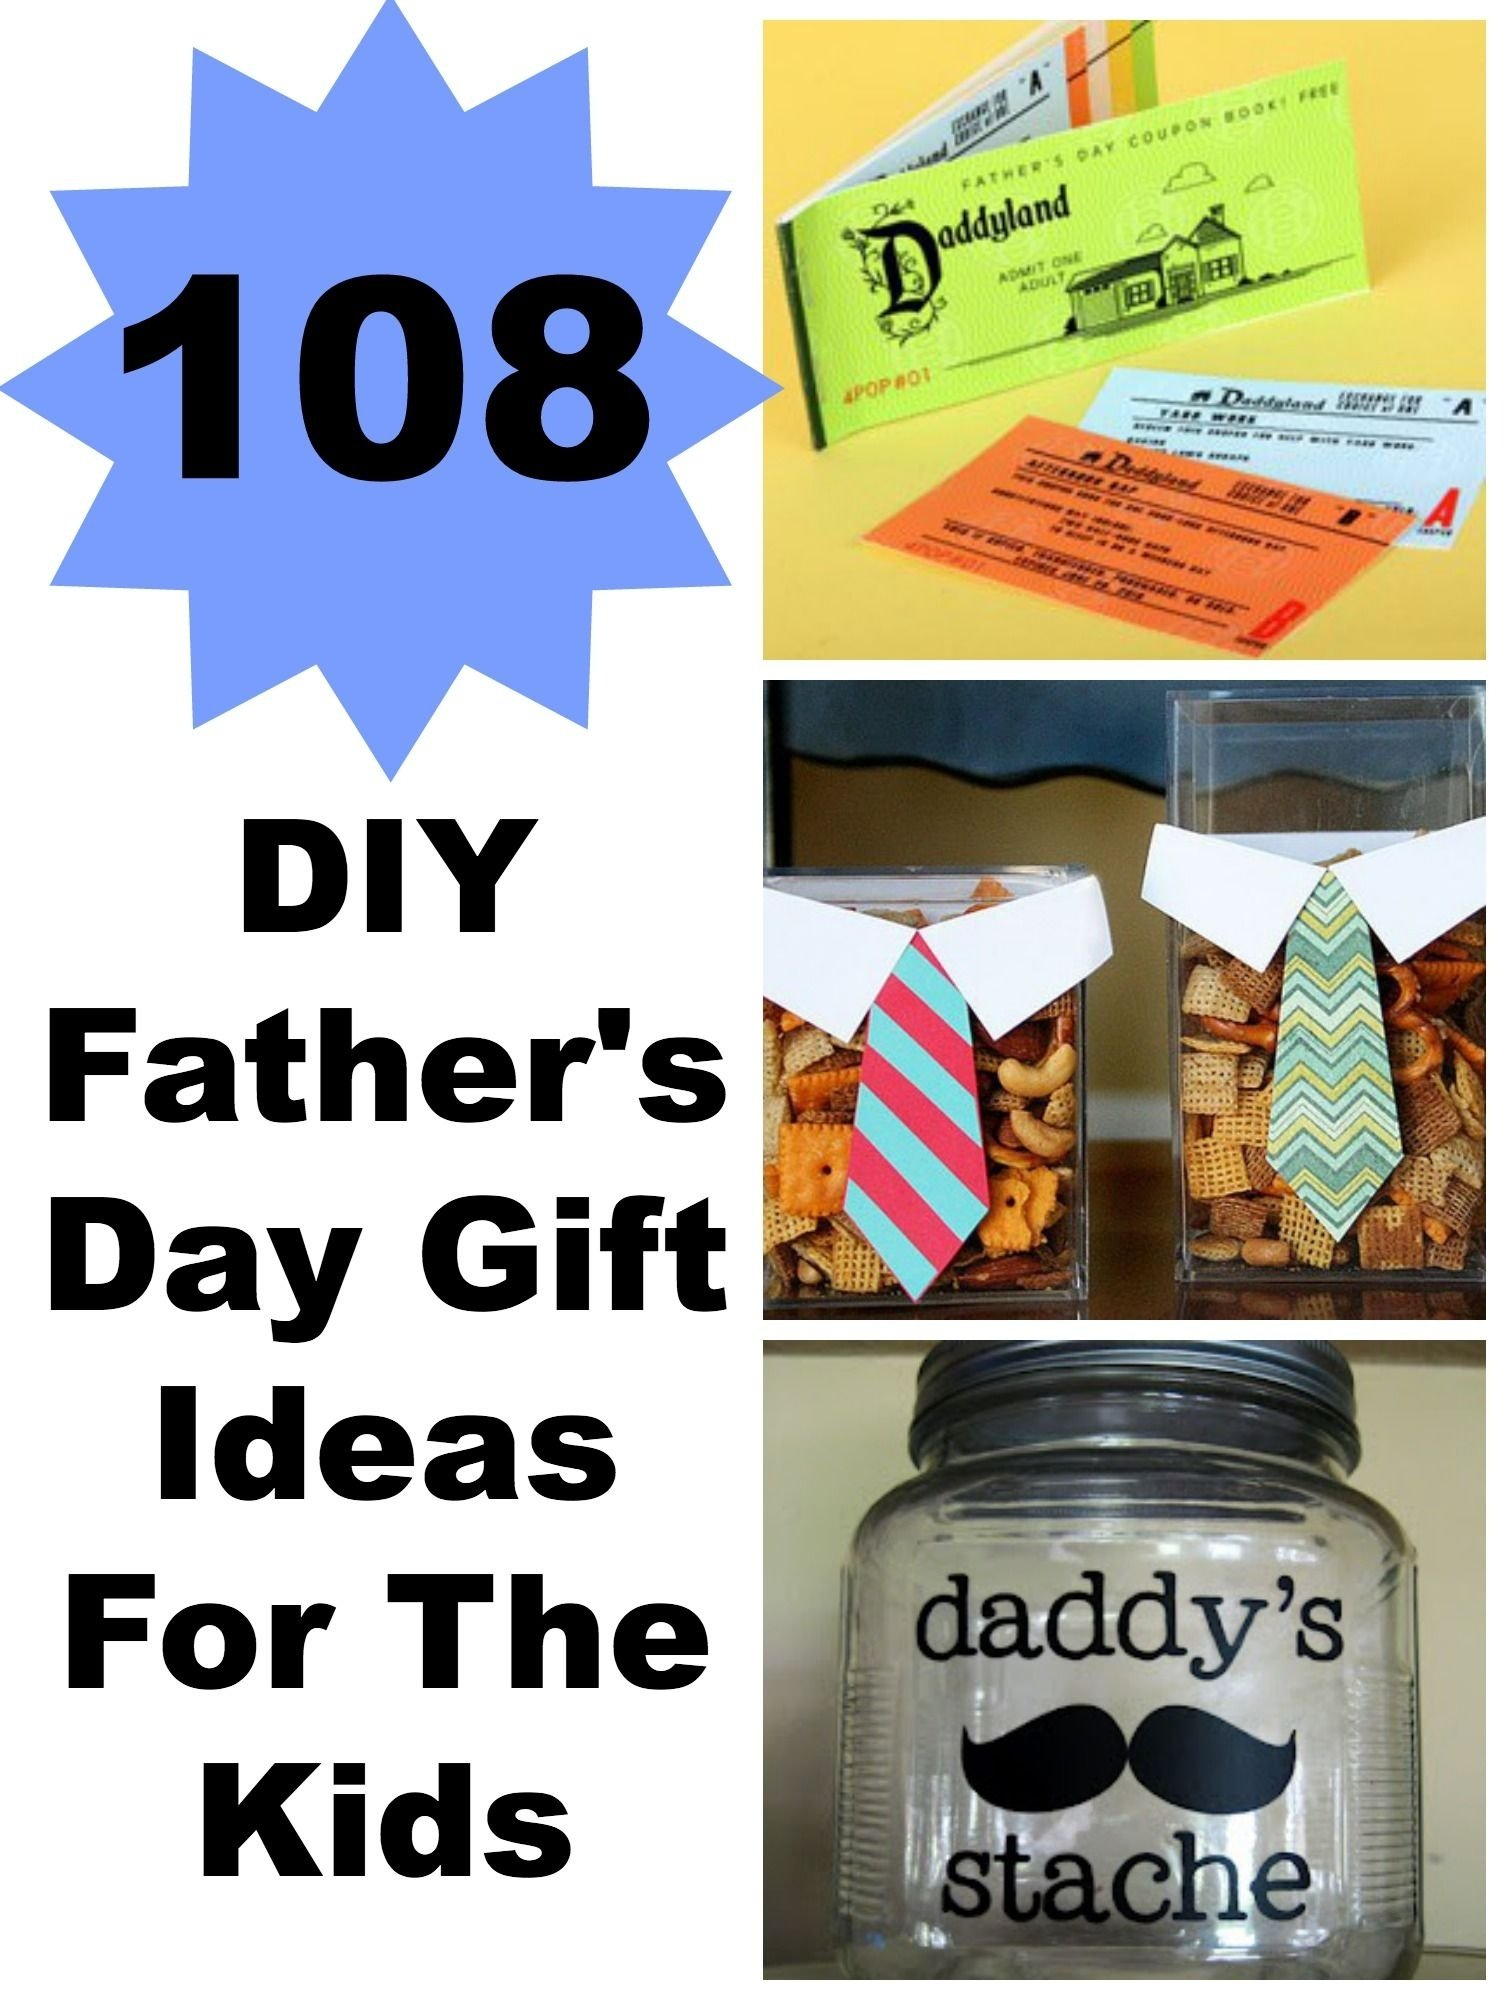 10 Lovable Homemade Father Day Gift Ideas 108 diy fathers day gift ideas for the kids easy diy projects 4 2020